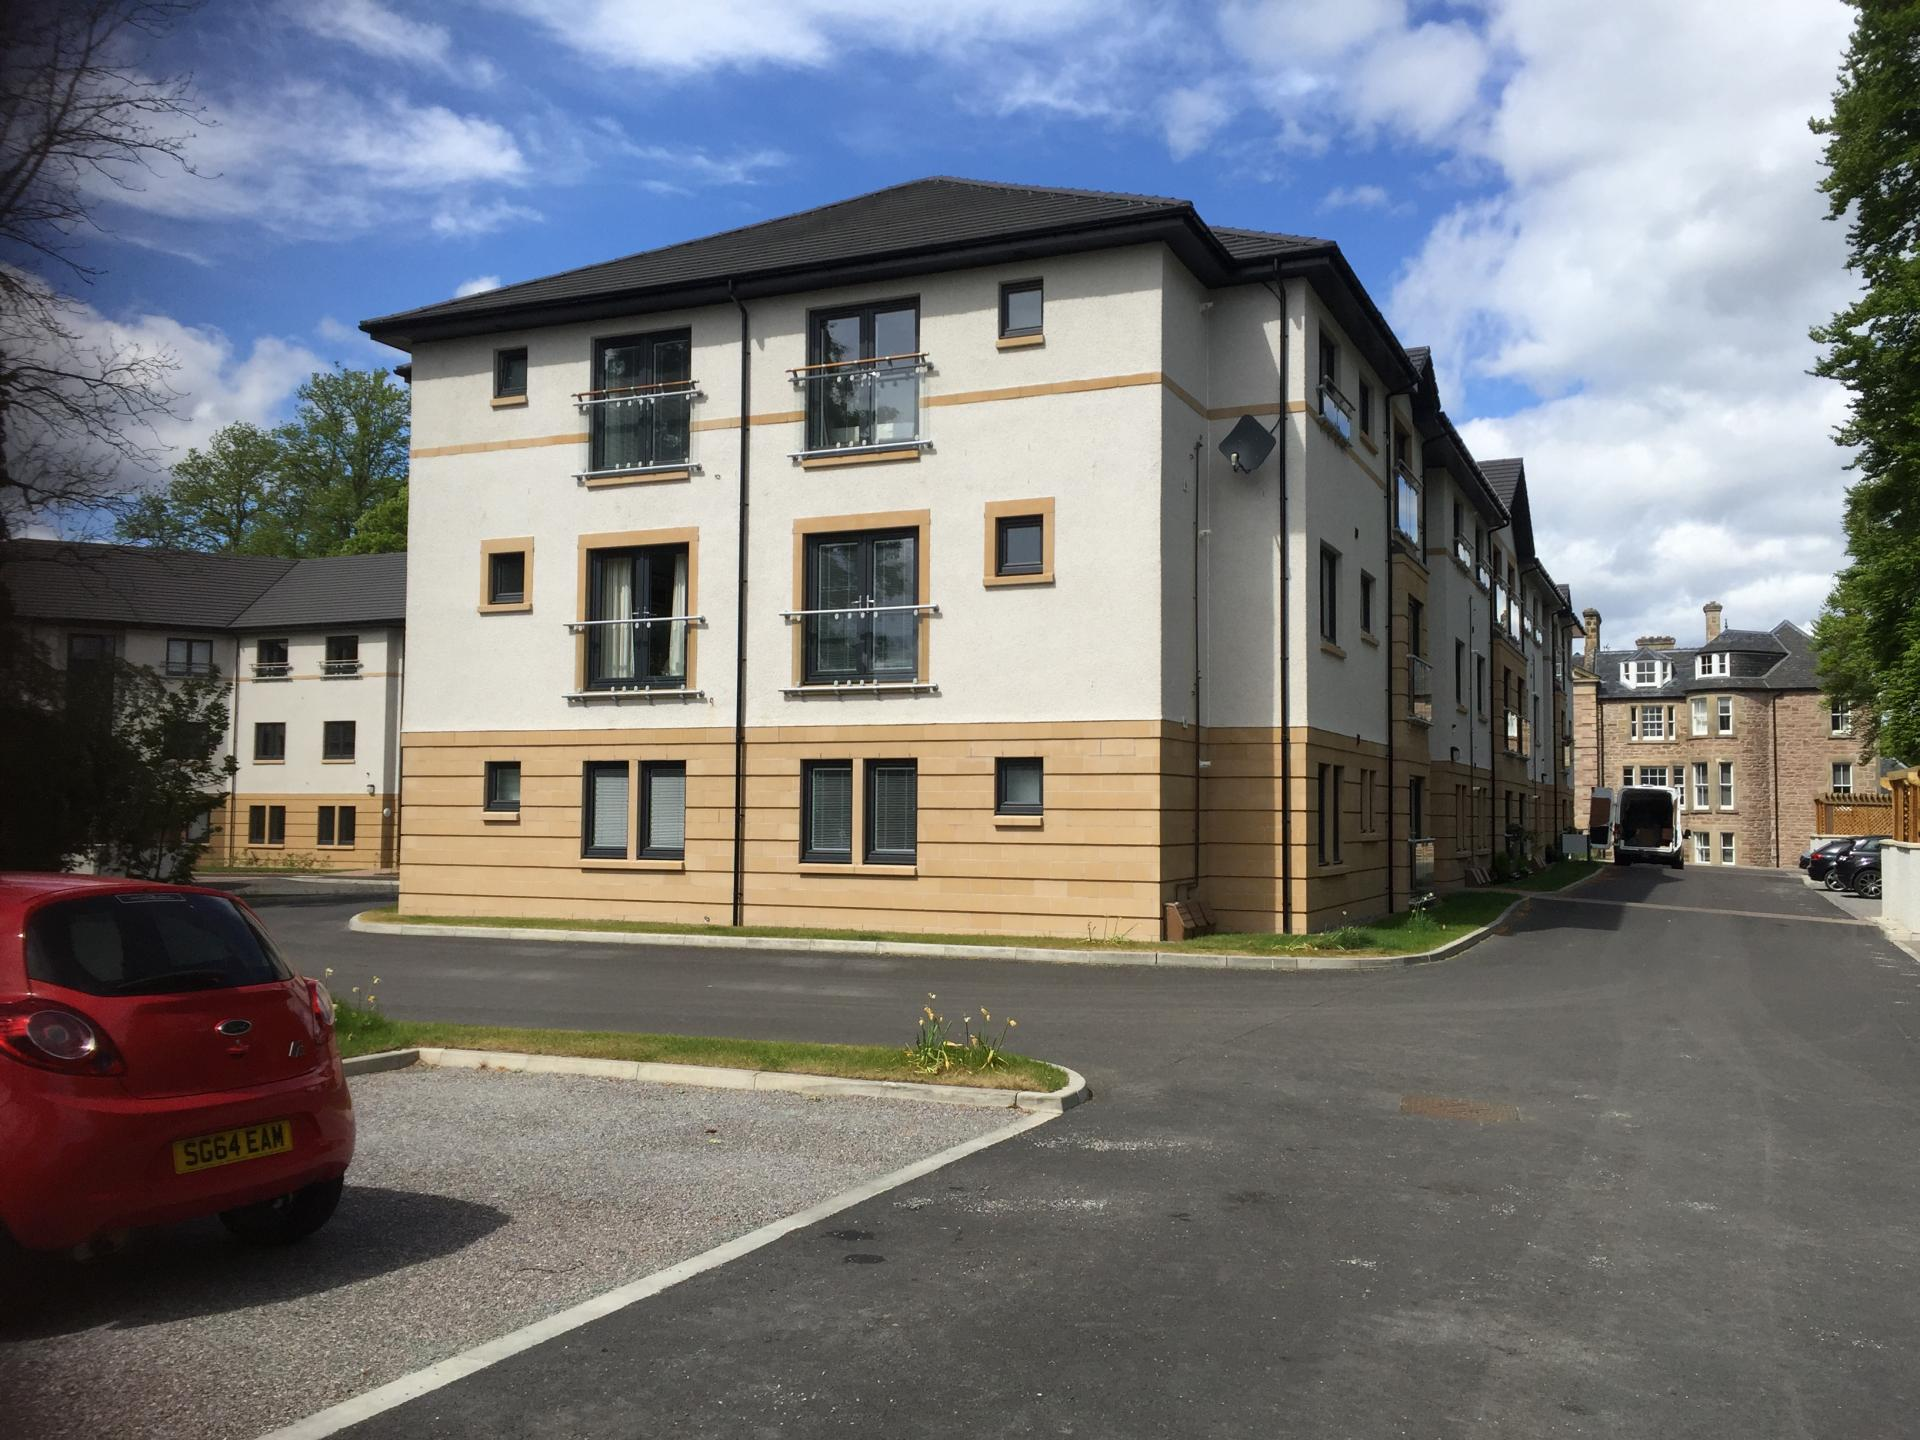 Exterior of Hedgefield Apartments, Centre, Inverness